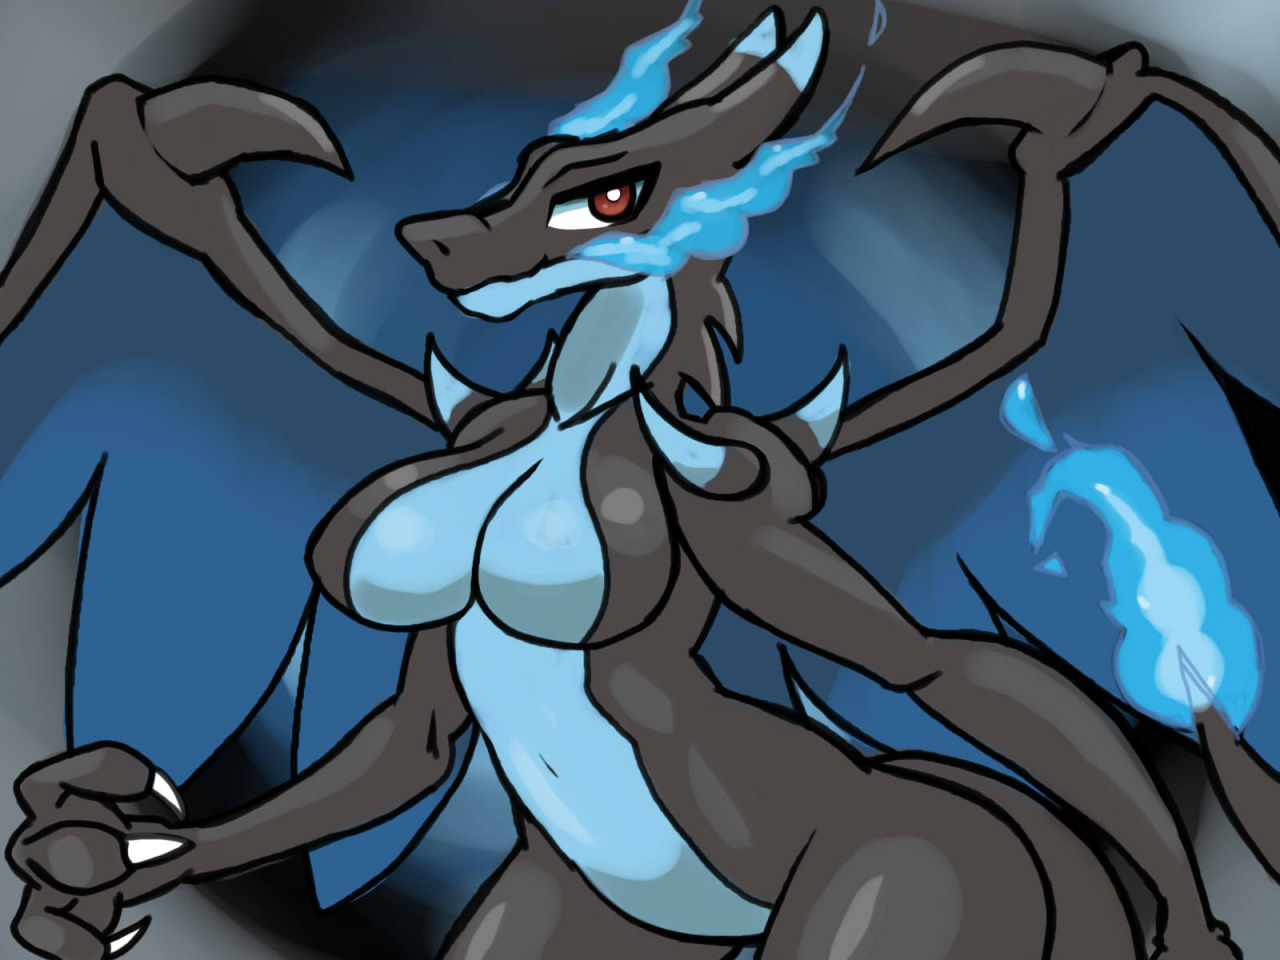 sexy pictures of charizard as a girl